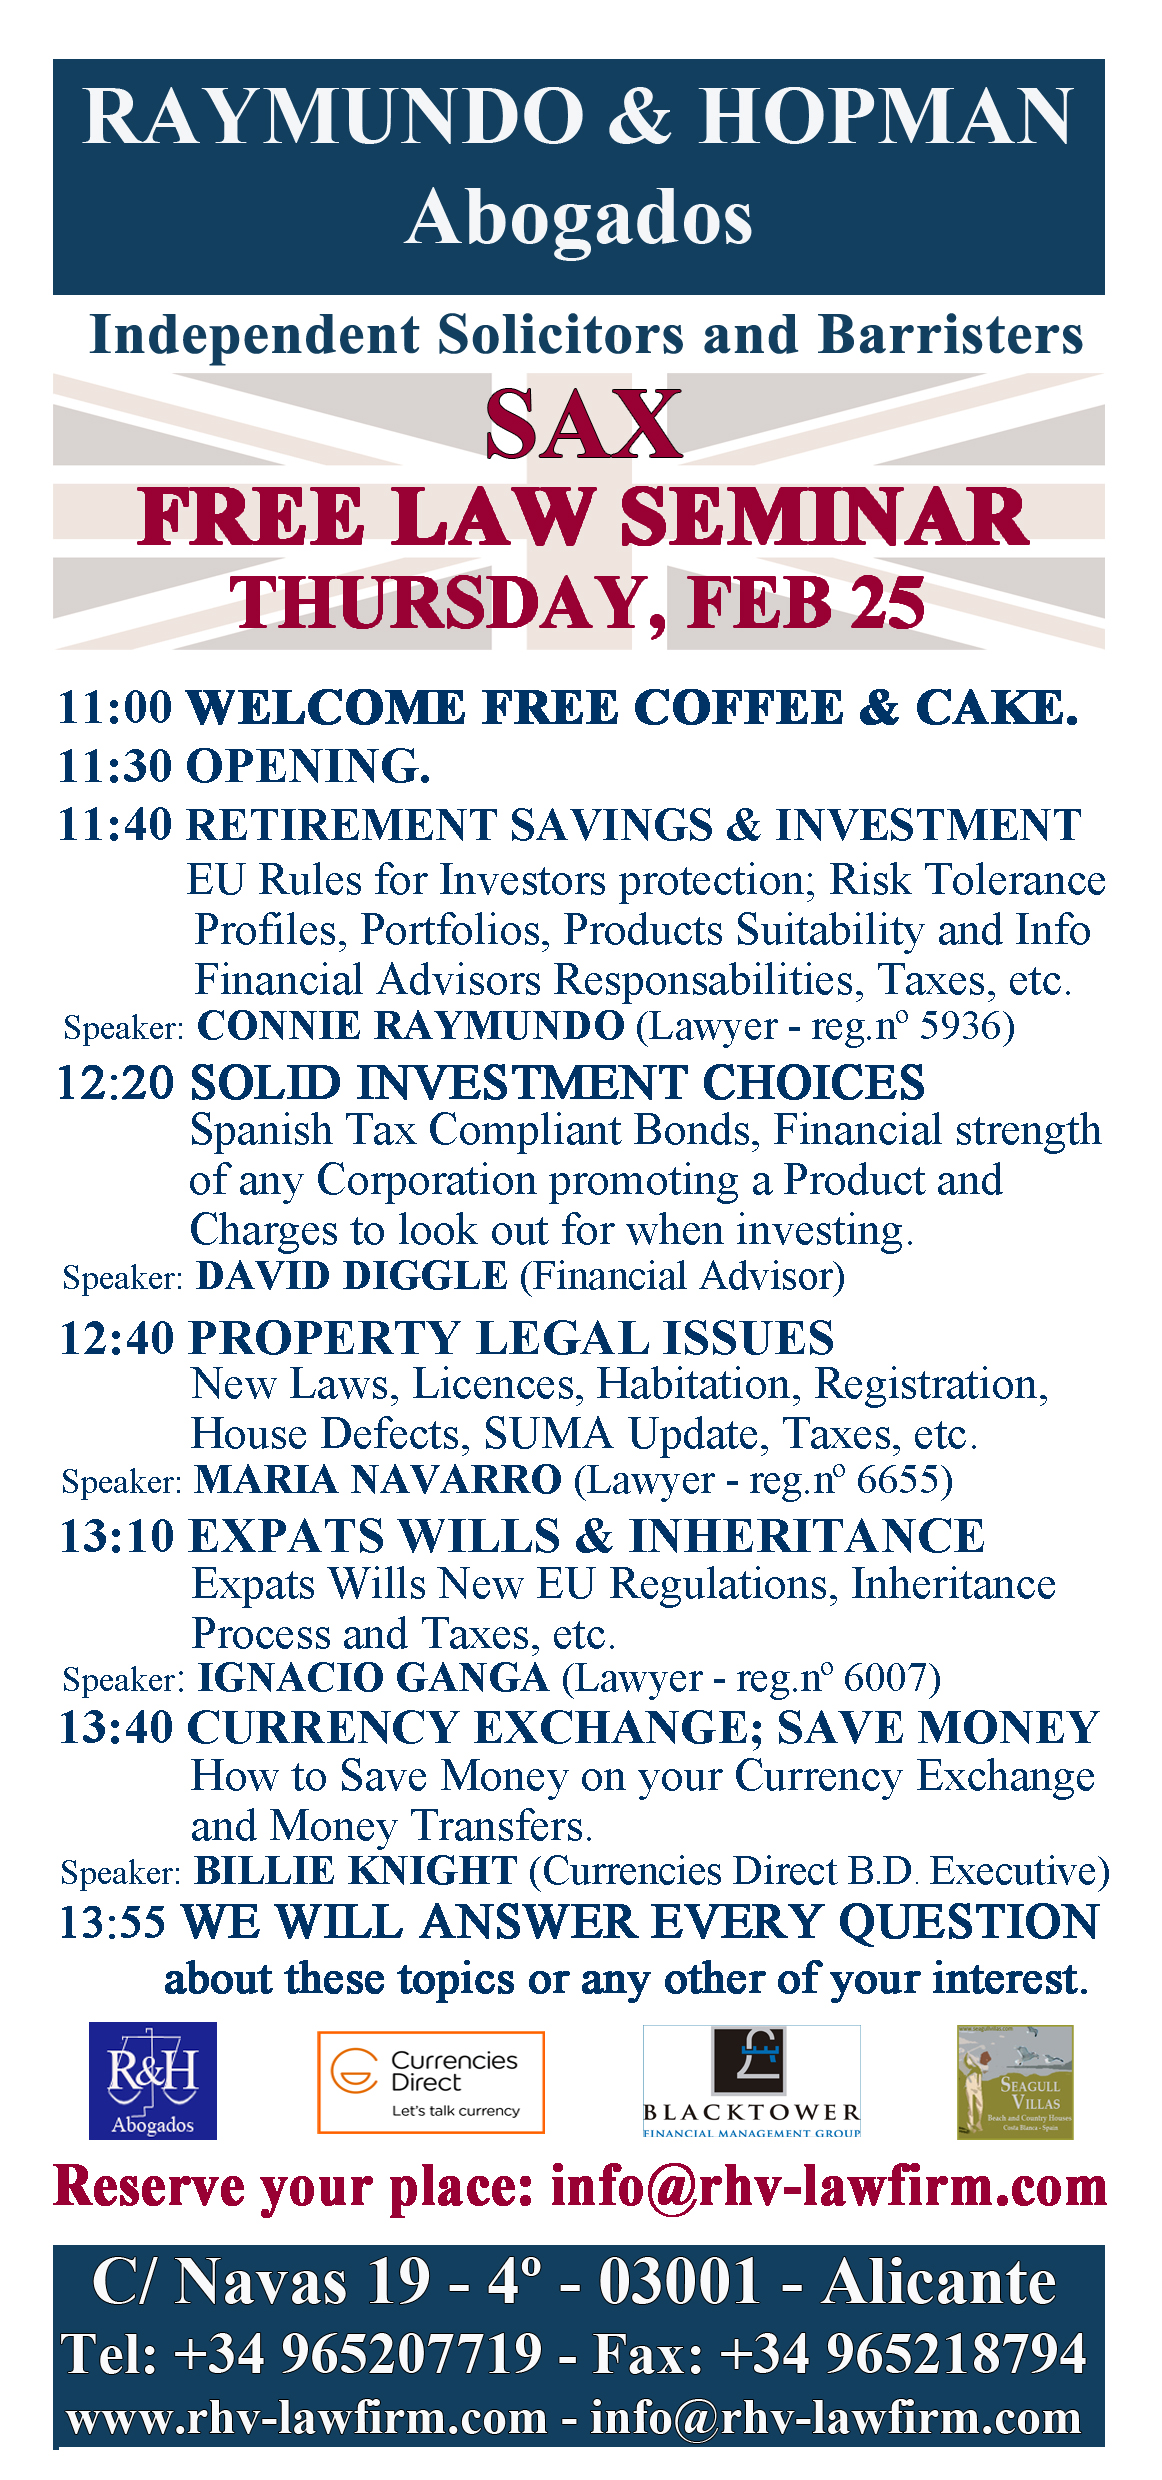 Free Law Seminar - Abogados Alicante, Independent Solicitor, Barristers, Lawyers, Tax Advisors, Conveyance & Property Experts, Architect, Translators, etc.